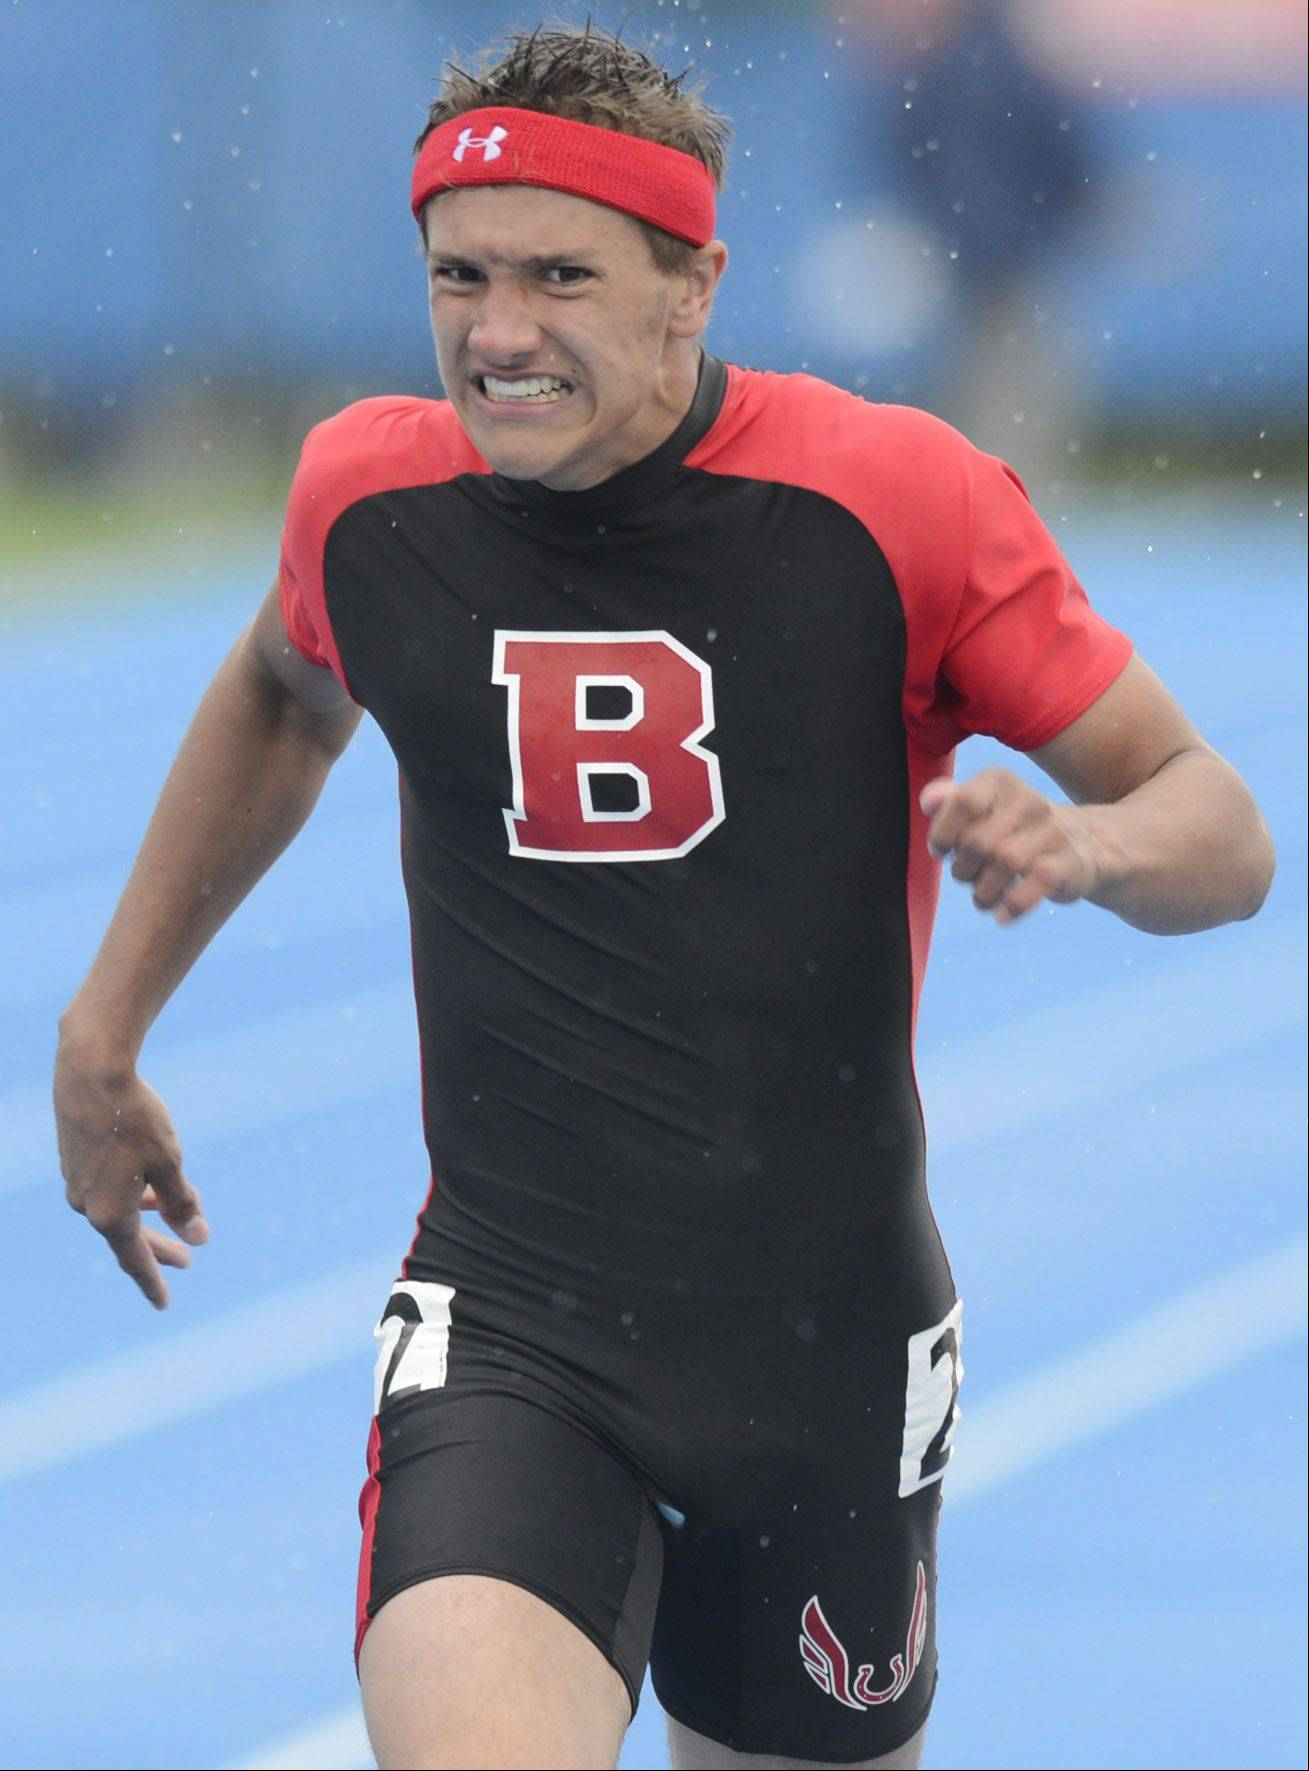 Barrington's Scotty Miller crosses the finish line in the Class 2A 200-meter dash during the boys track state finals in Charleston on Saturday.